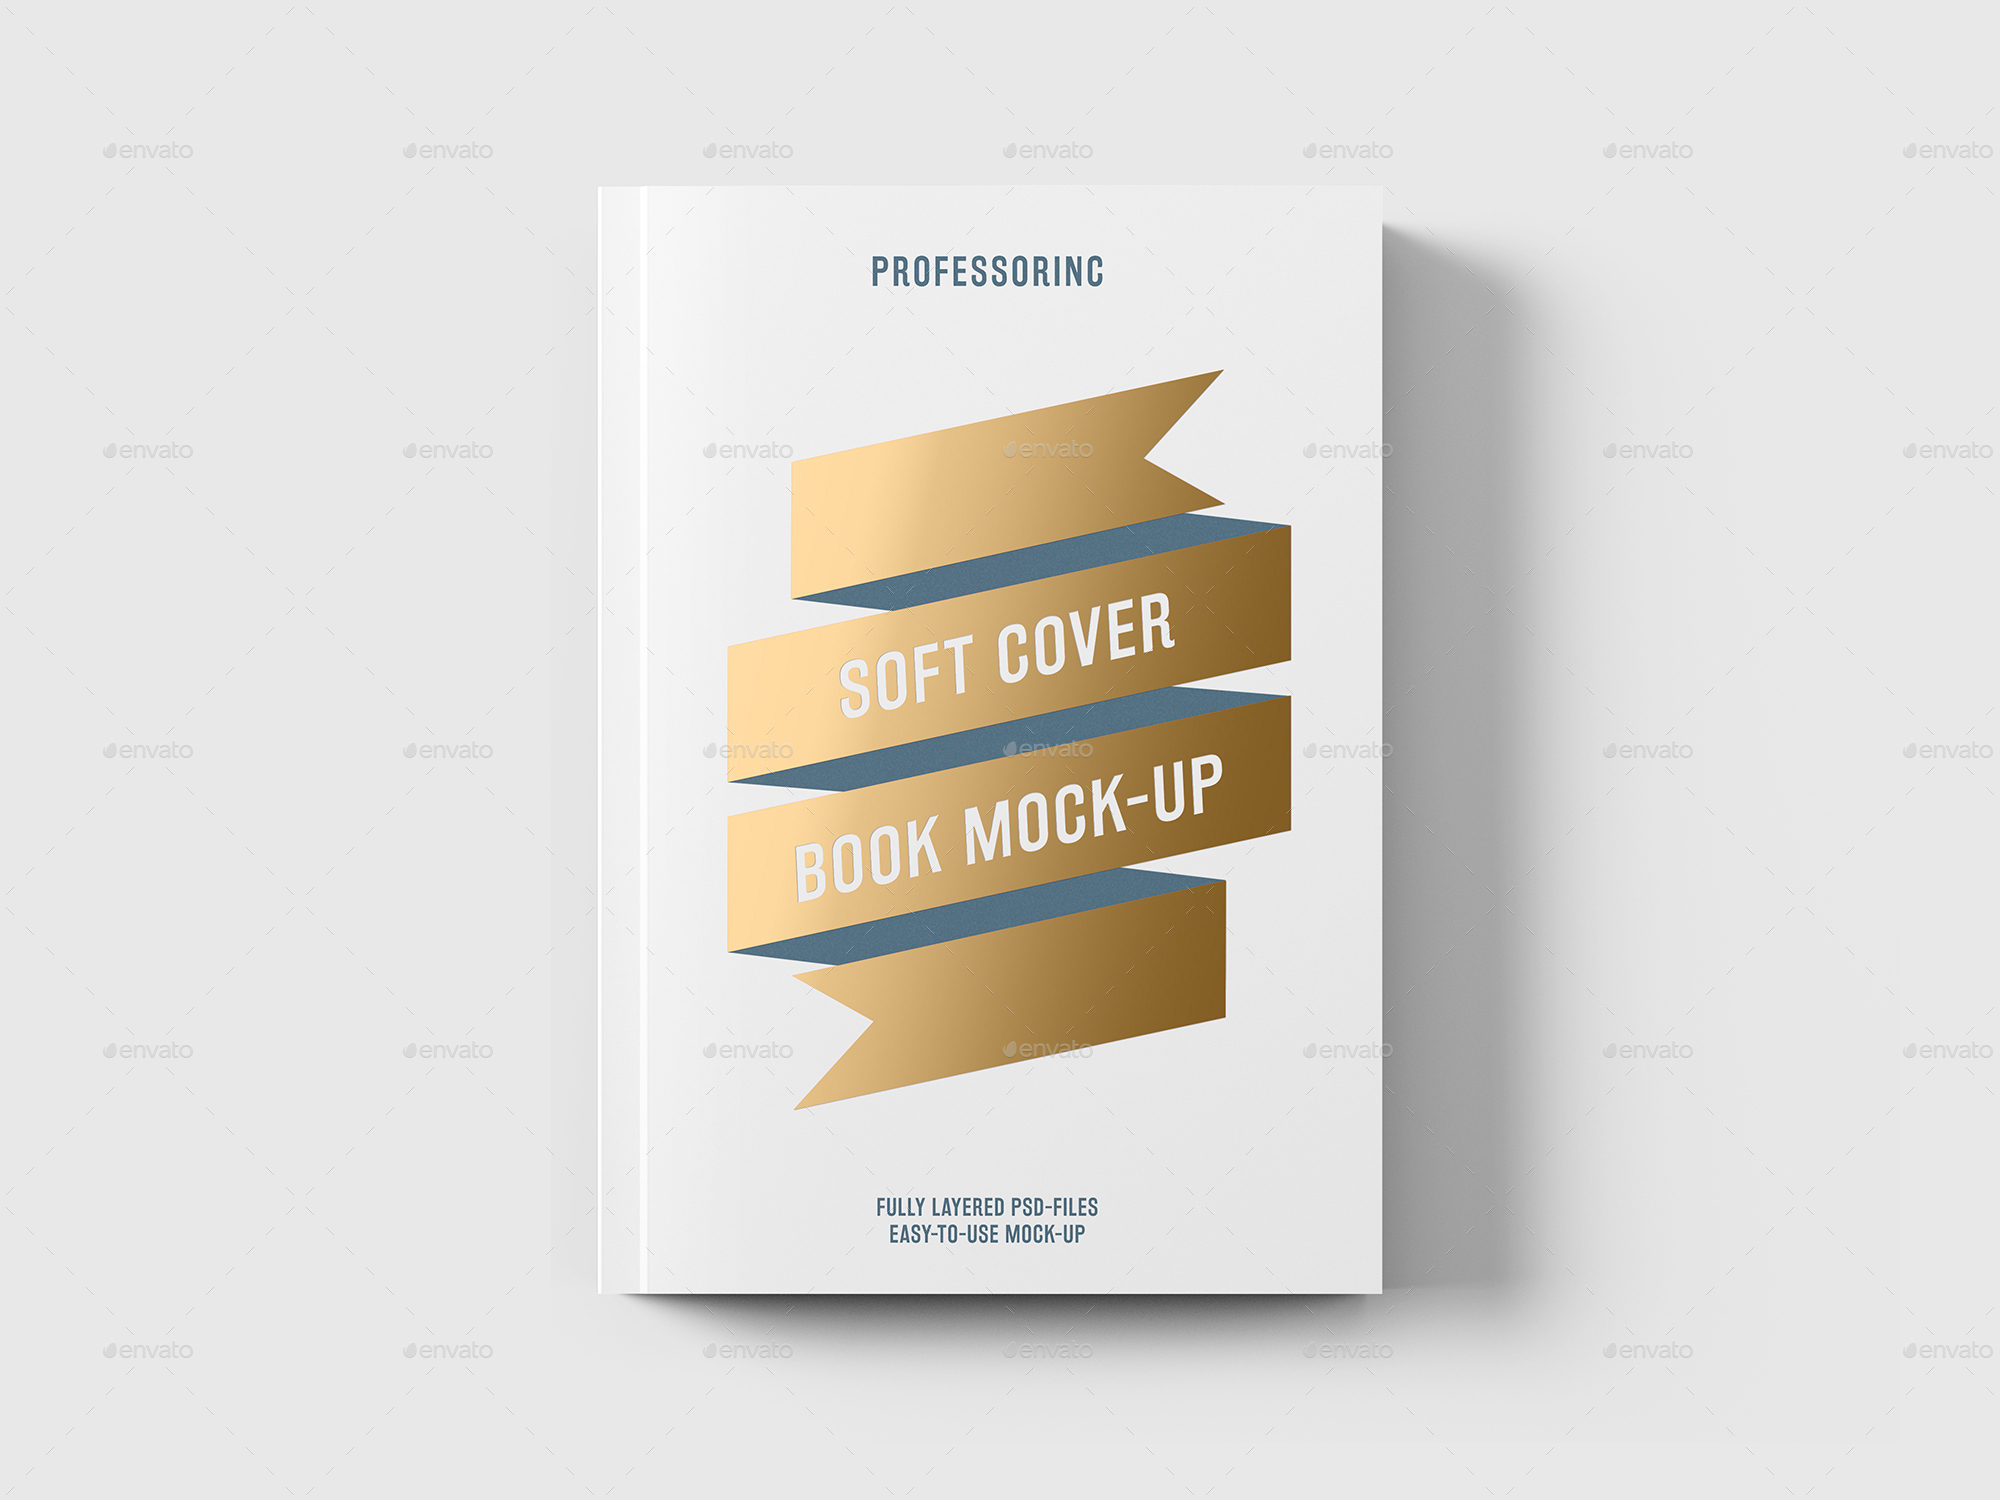 Cover Up Book ~ Soft cover book with foil stamping mock up by professorinc